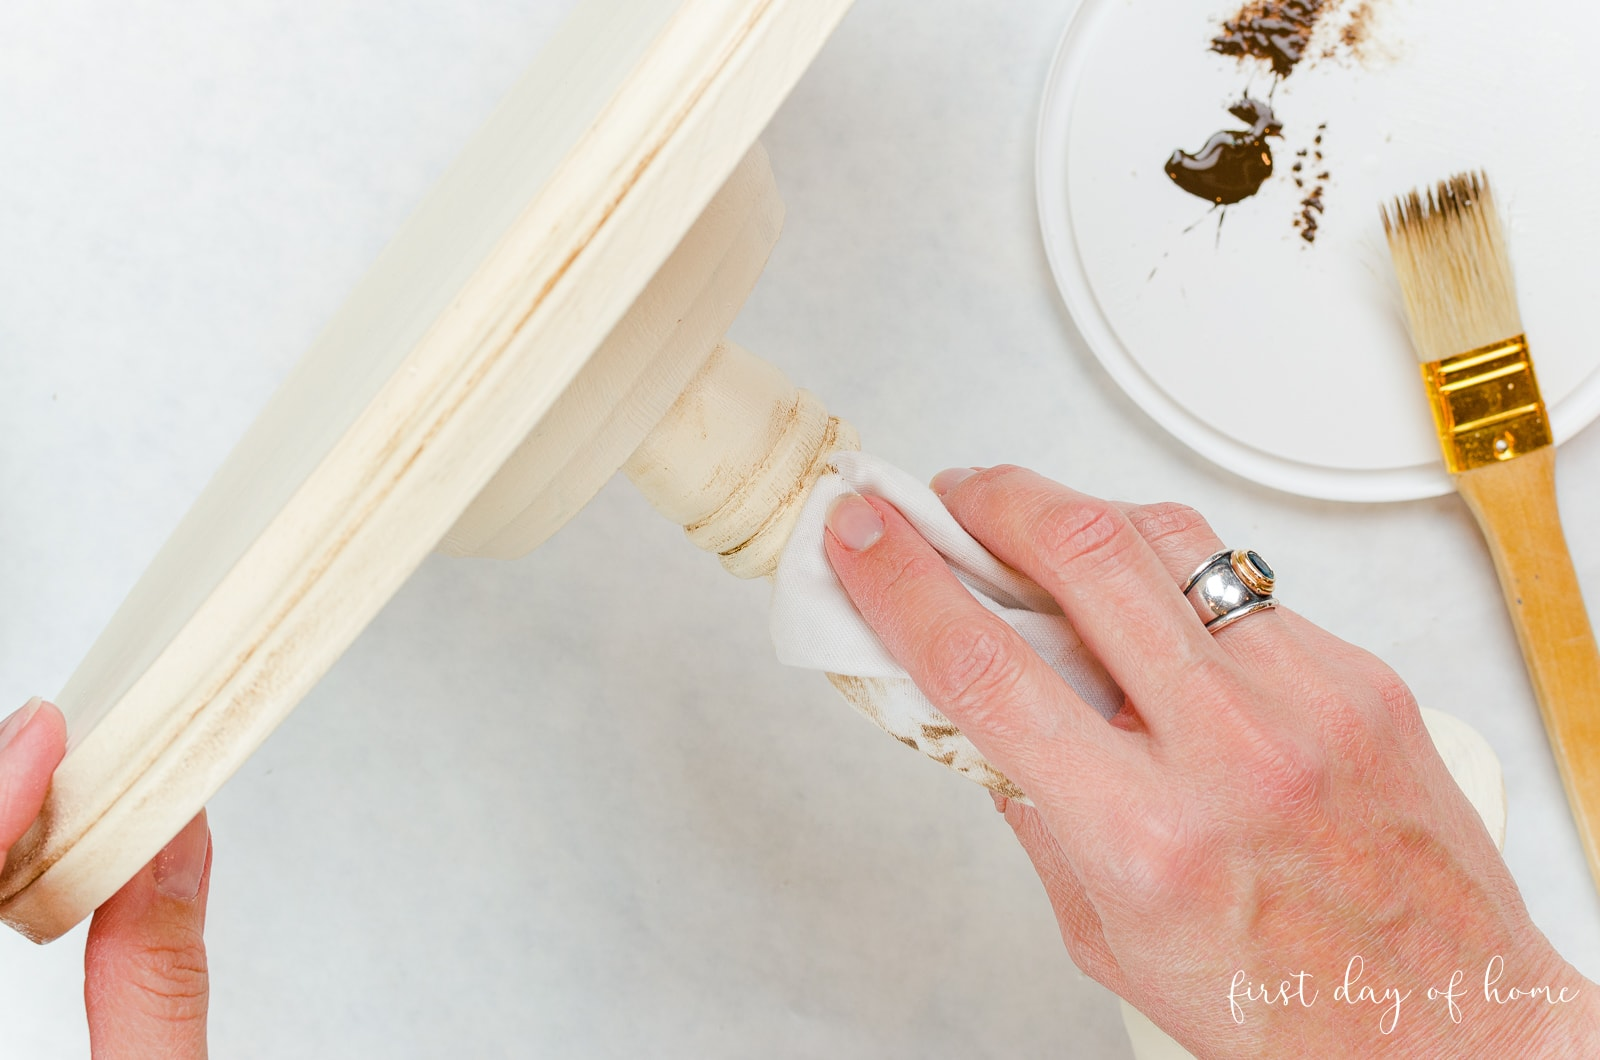 Wiping off excess antiquing wax from DIY cake stand made of wood